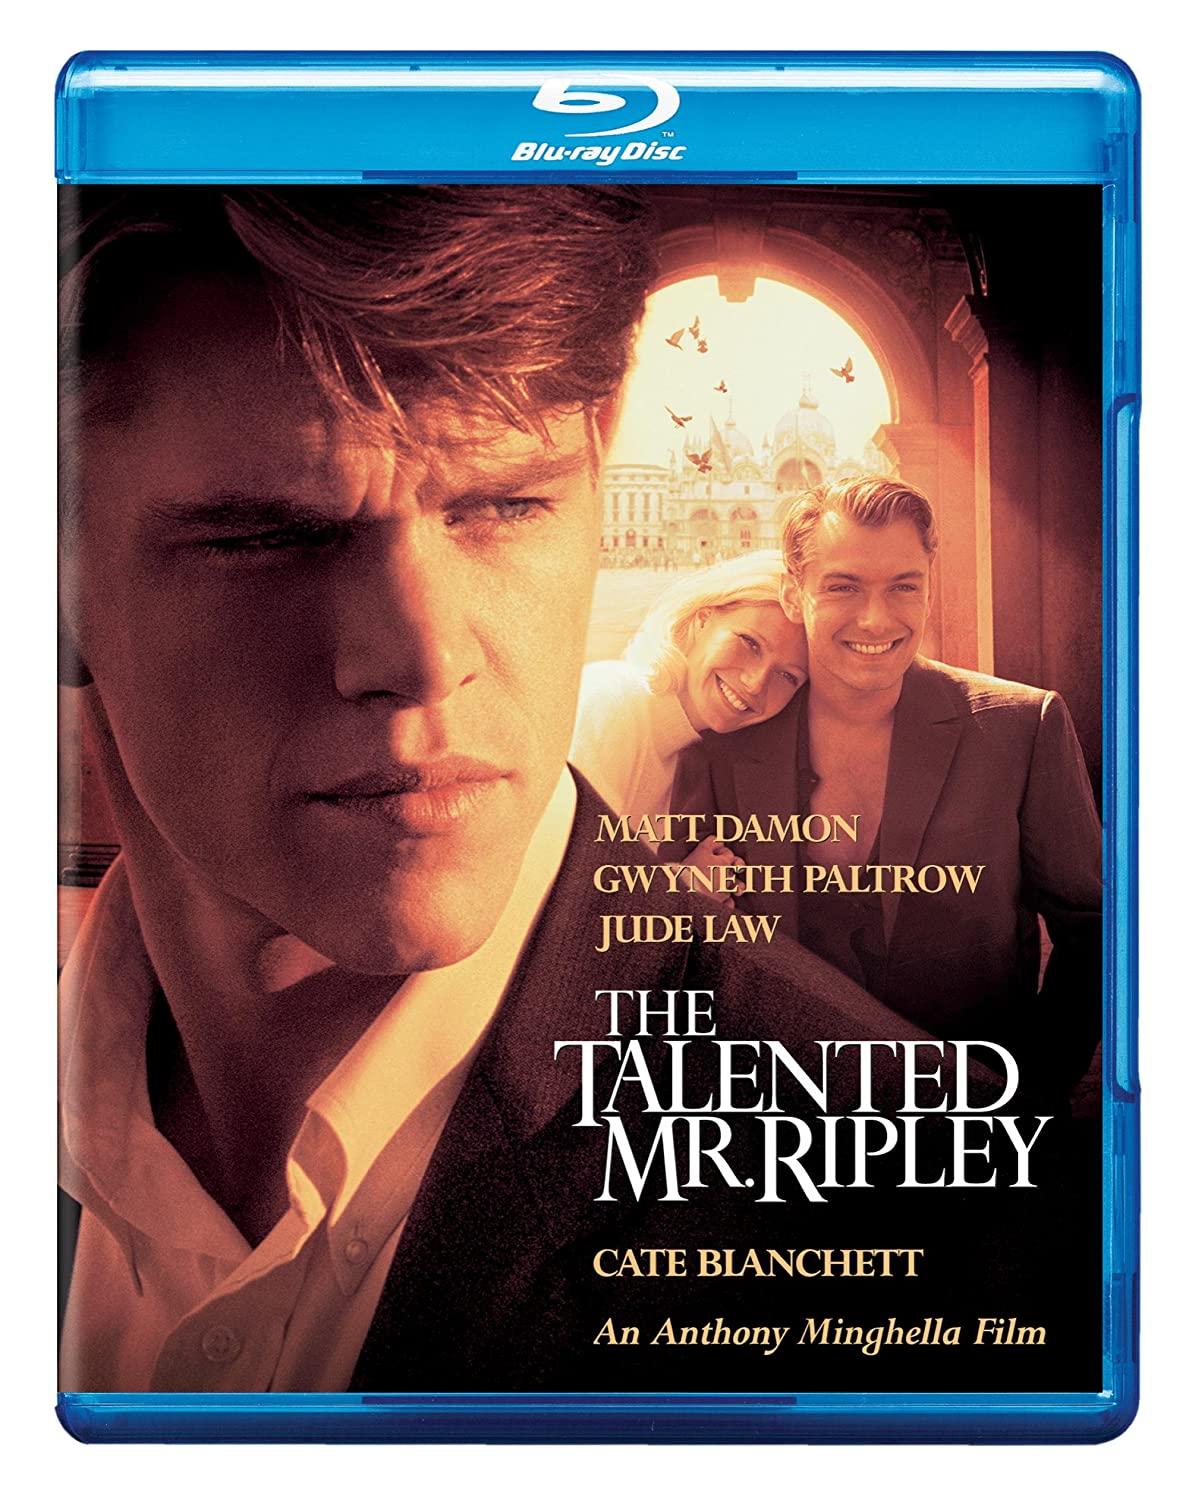 amazon com talented mr ripley the 1999 bd blu ray amazon com talented mr ripley the 1999 bd blu ray various movies tv